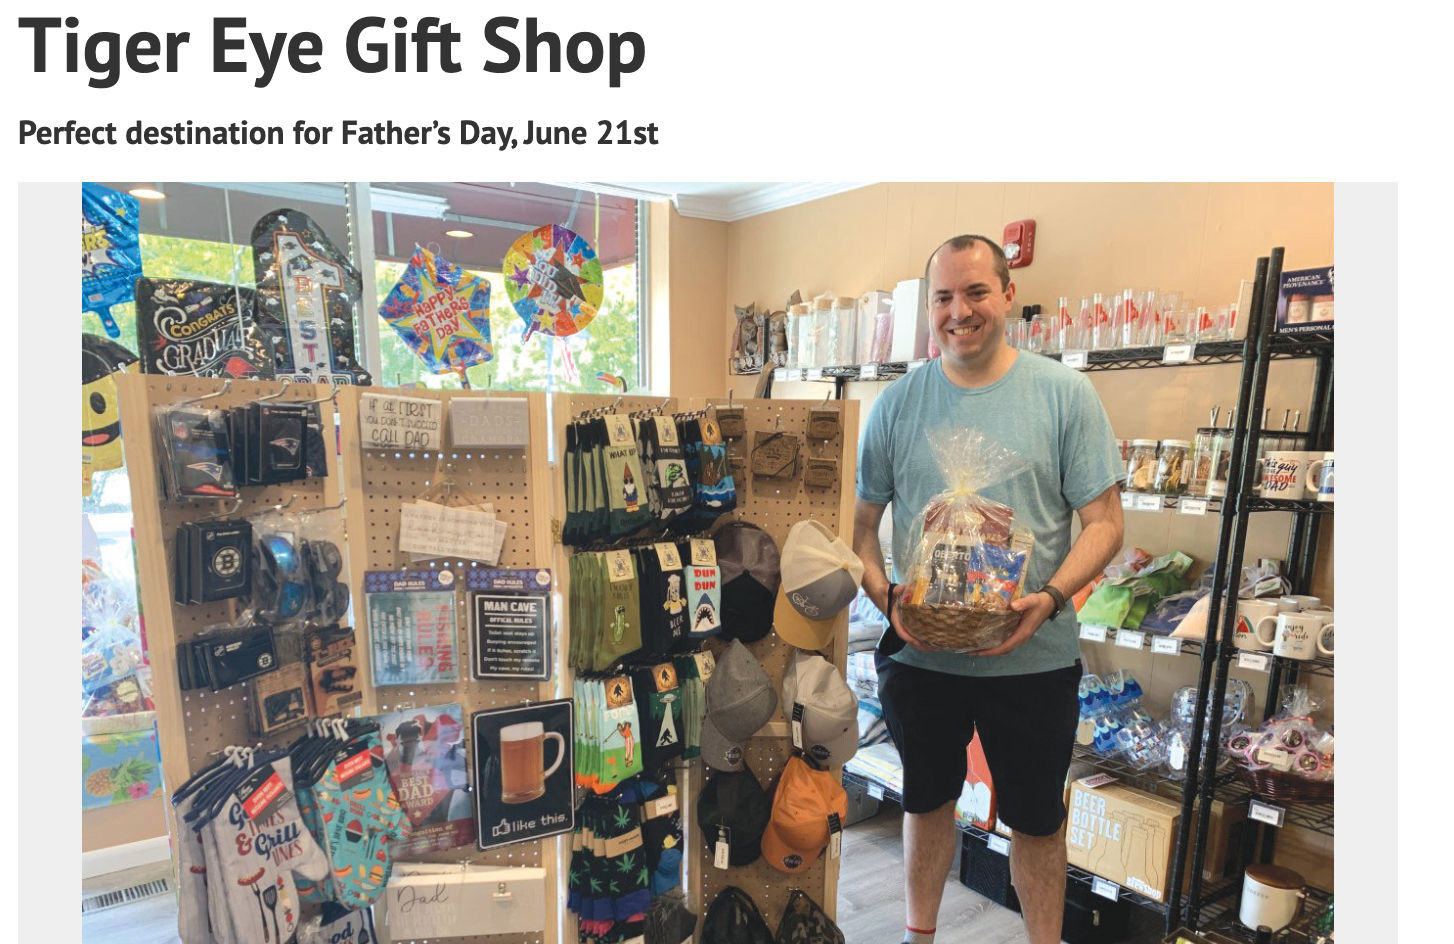 [CREDIT: Warwick Beacon] Tiger Eye Gift Shop was recently featured in the Warwick Beacon.